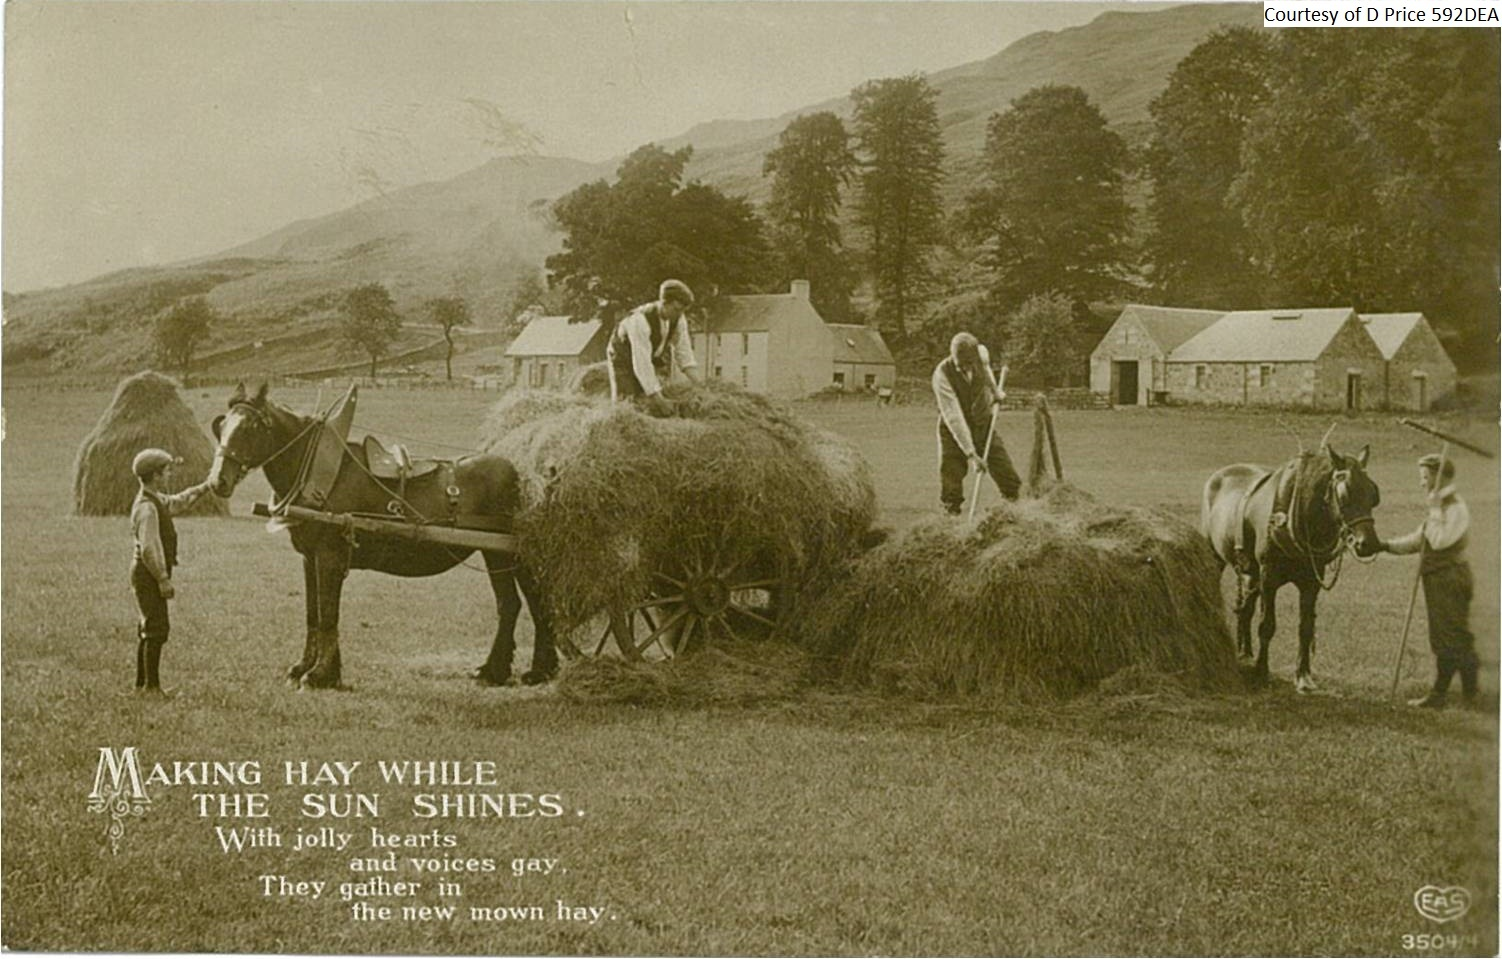 592dea-making-hay-while-the-sun-shines-fornt